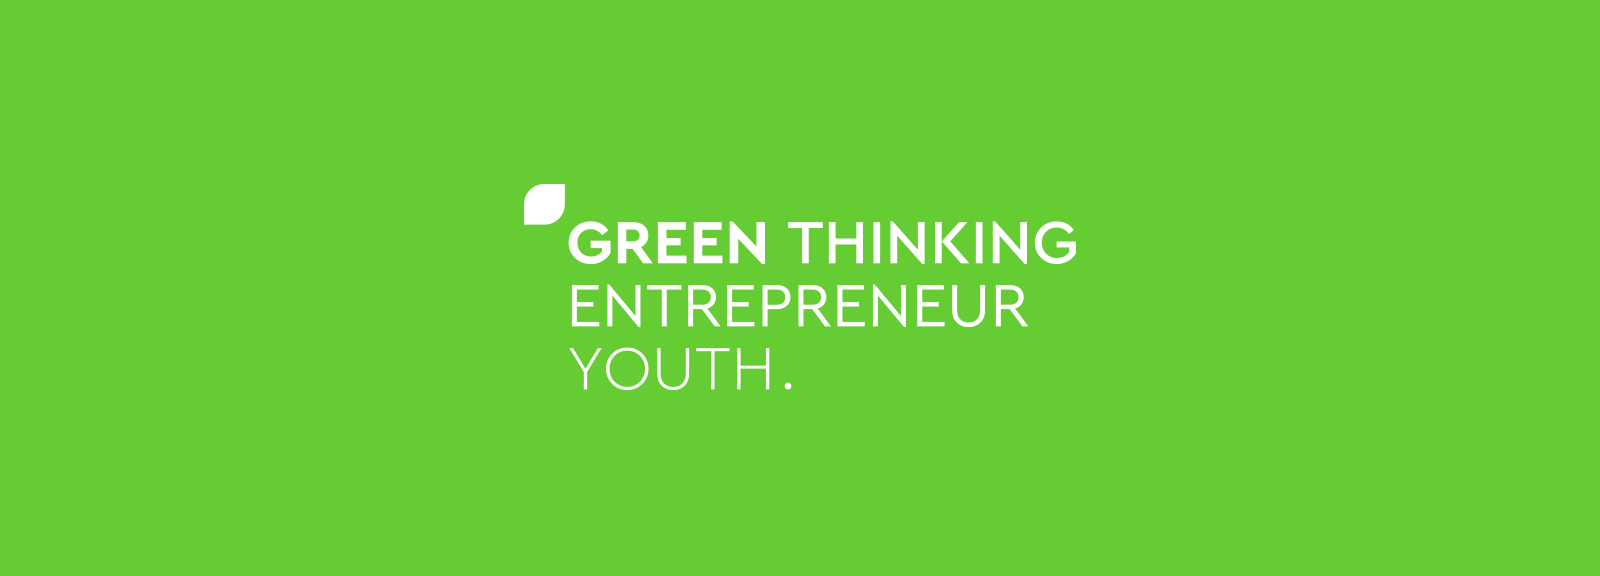 Green Thinking Entrepreneur Youth